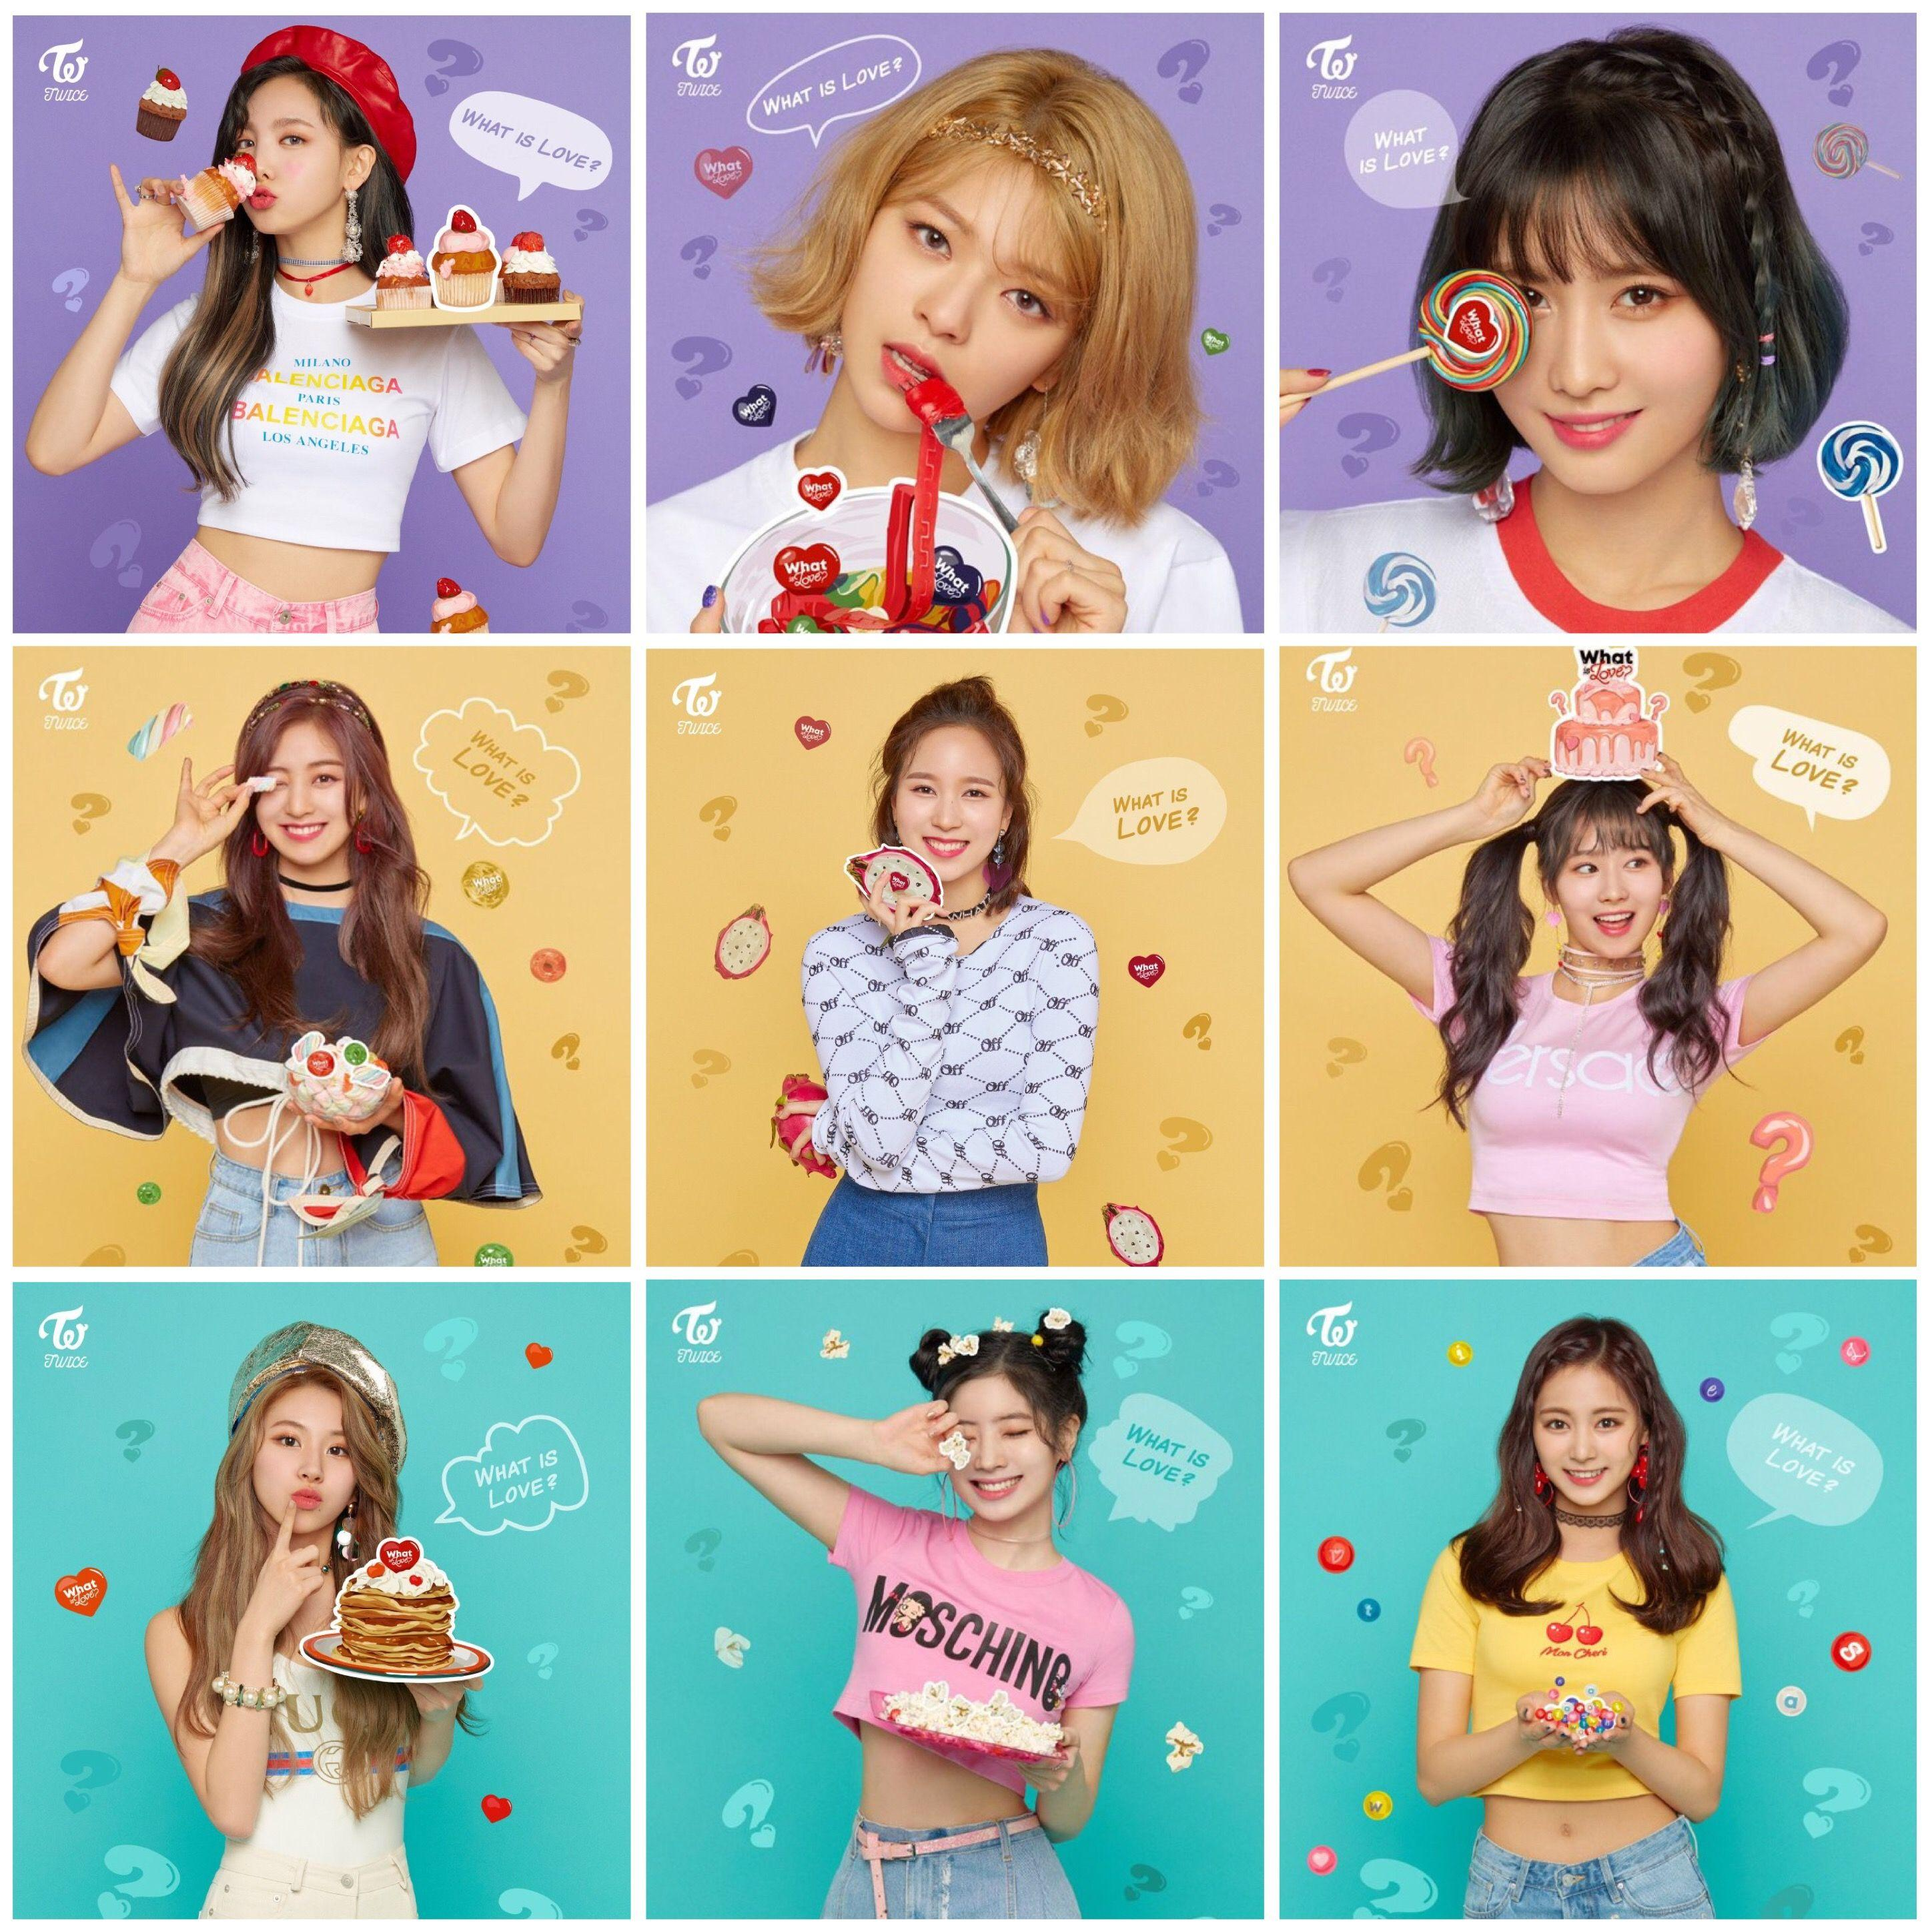 TWICE What Is Love? Wallpapers - Wallpaper Cave